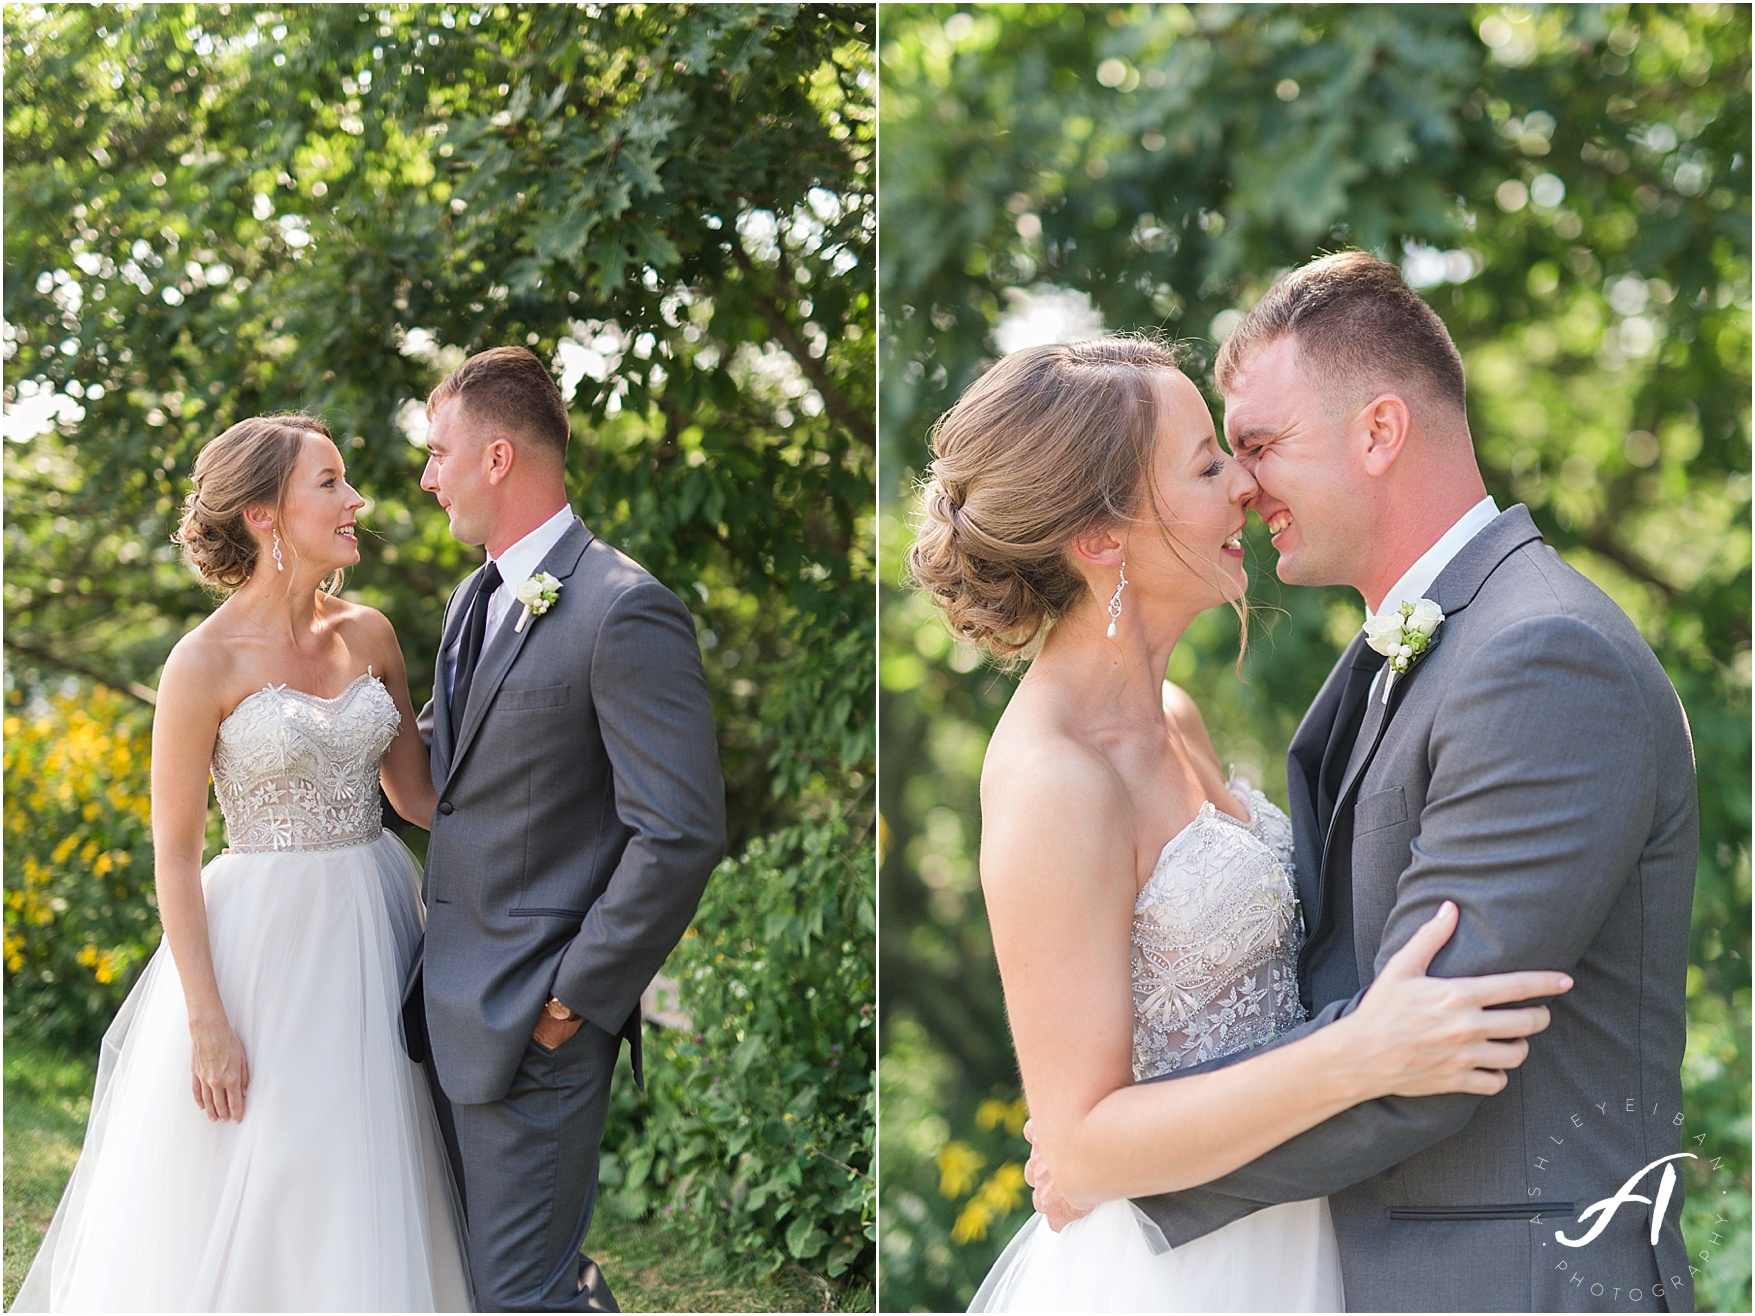 Wintergreen Resort Wedding || Elegant gray and green summer wedding || Ashley Eiban Photography || www.ashleyeiban.com